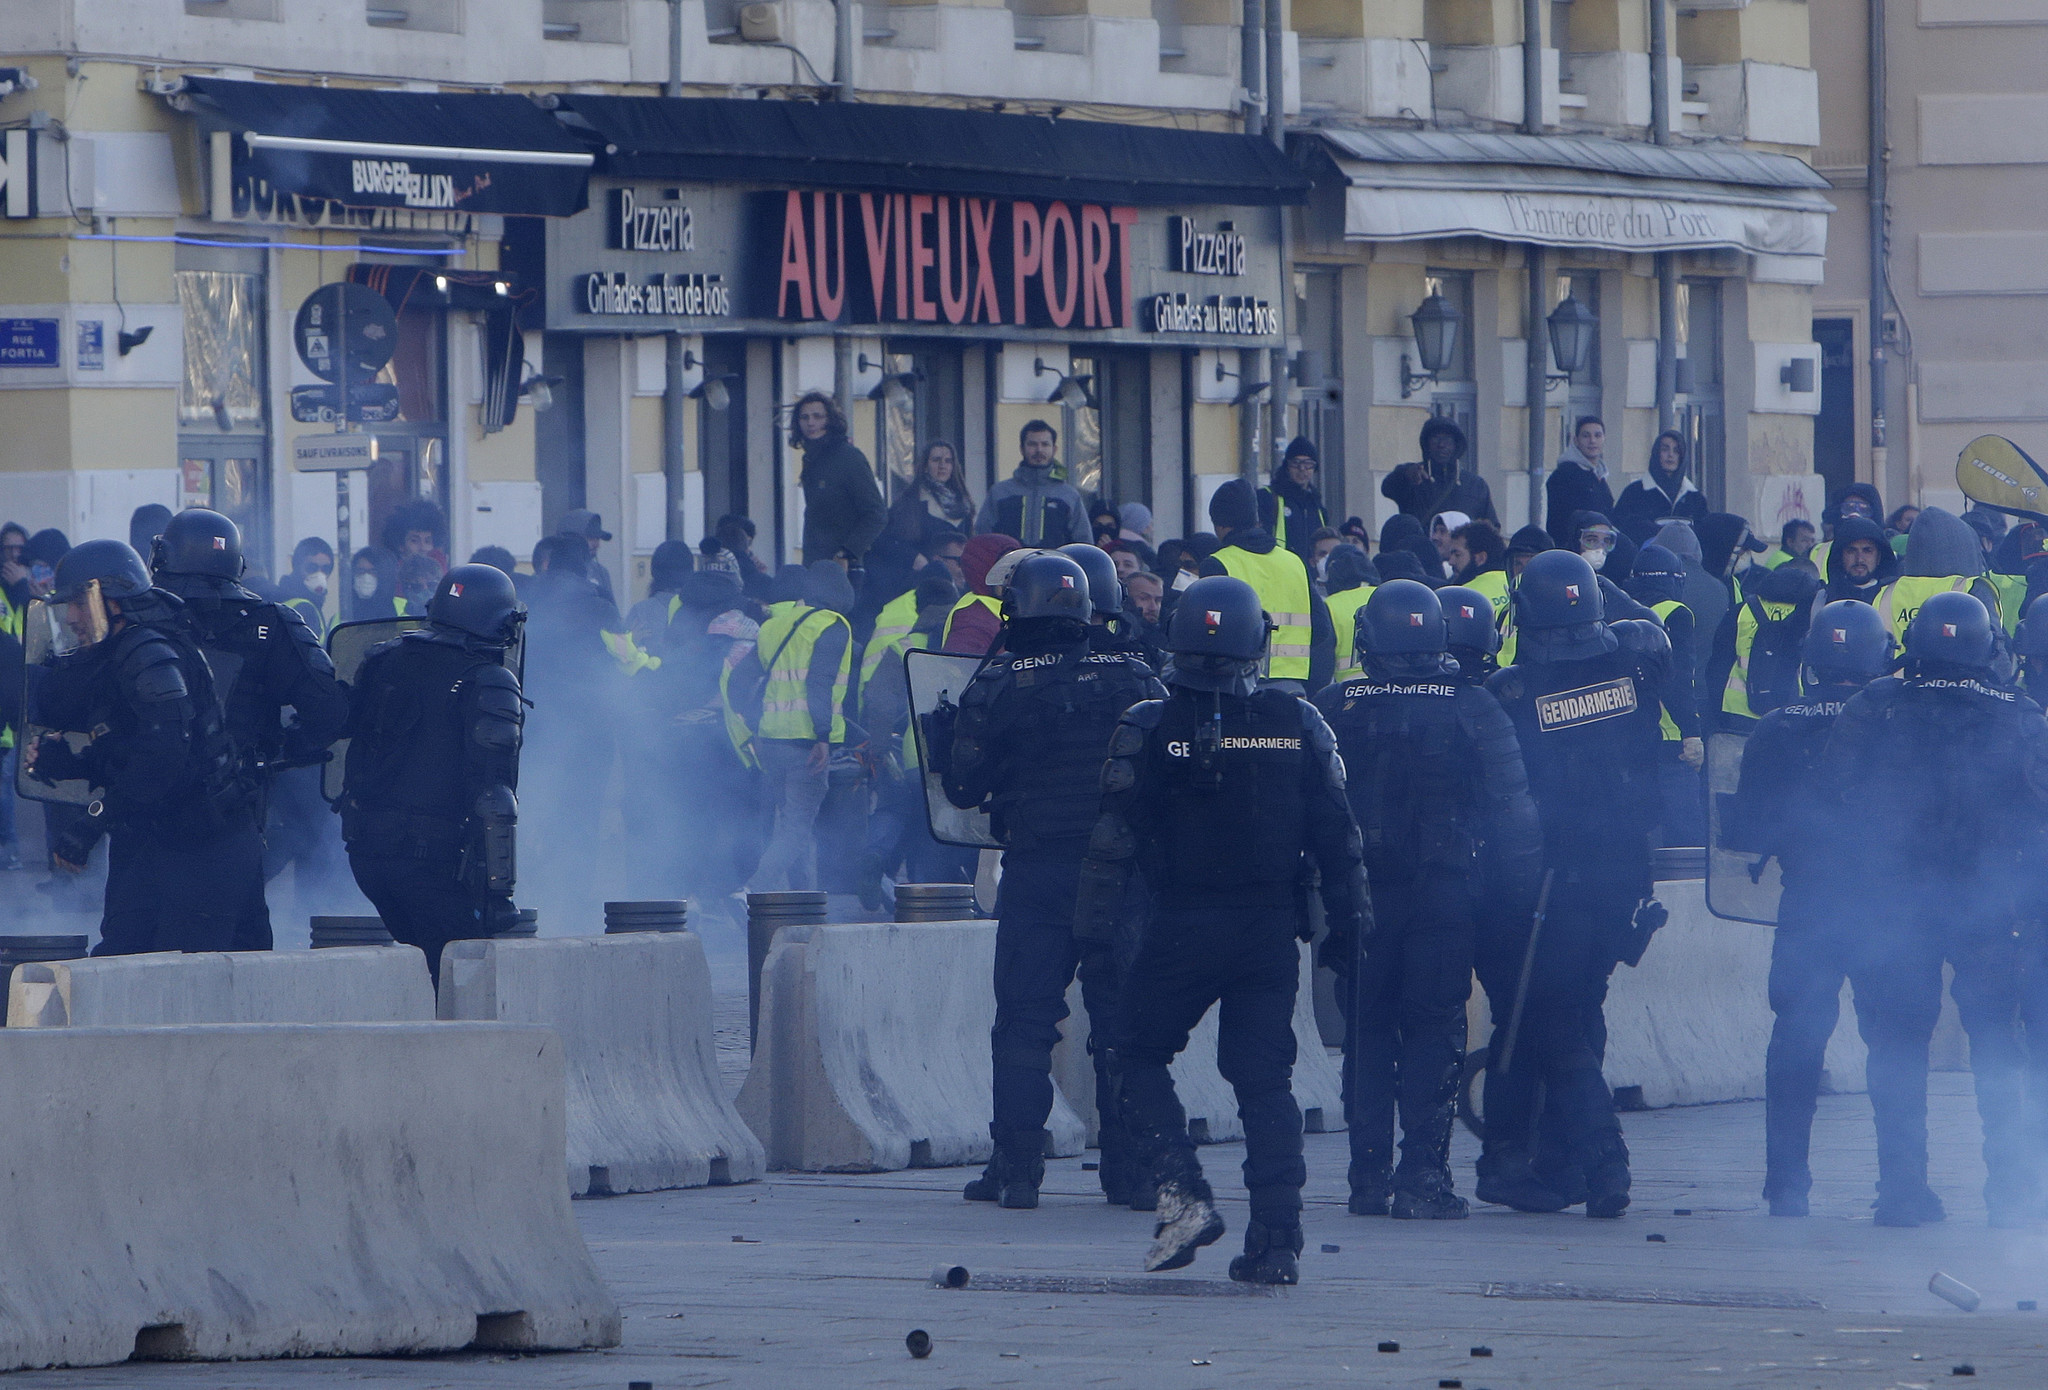 Paris cleans up after latest riot; pressure builds on Macron